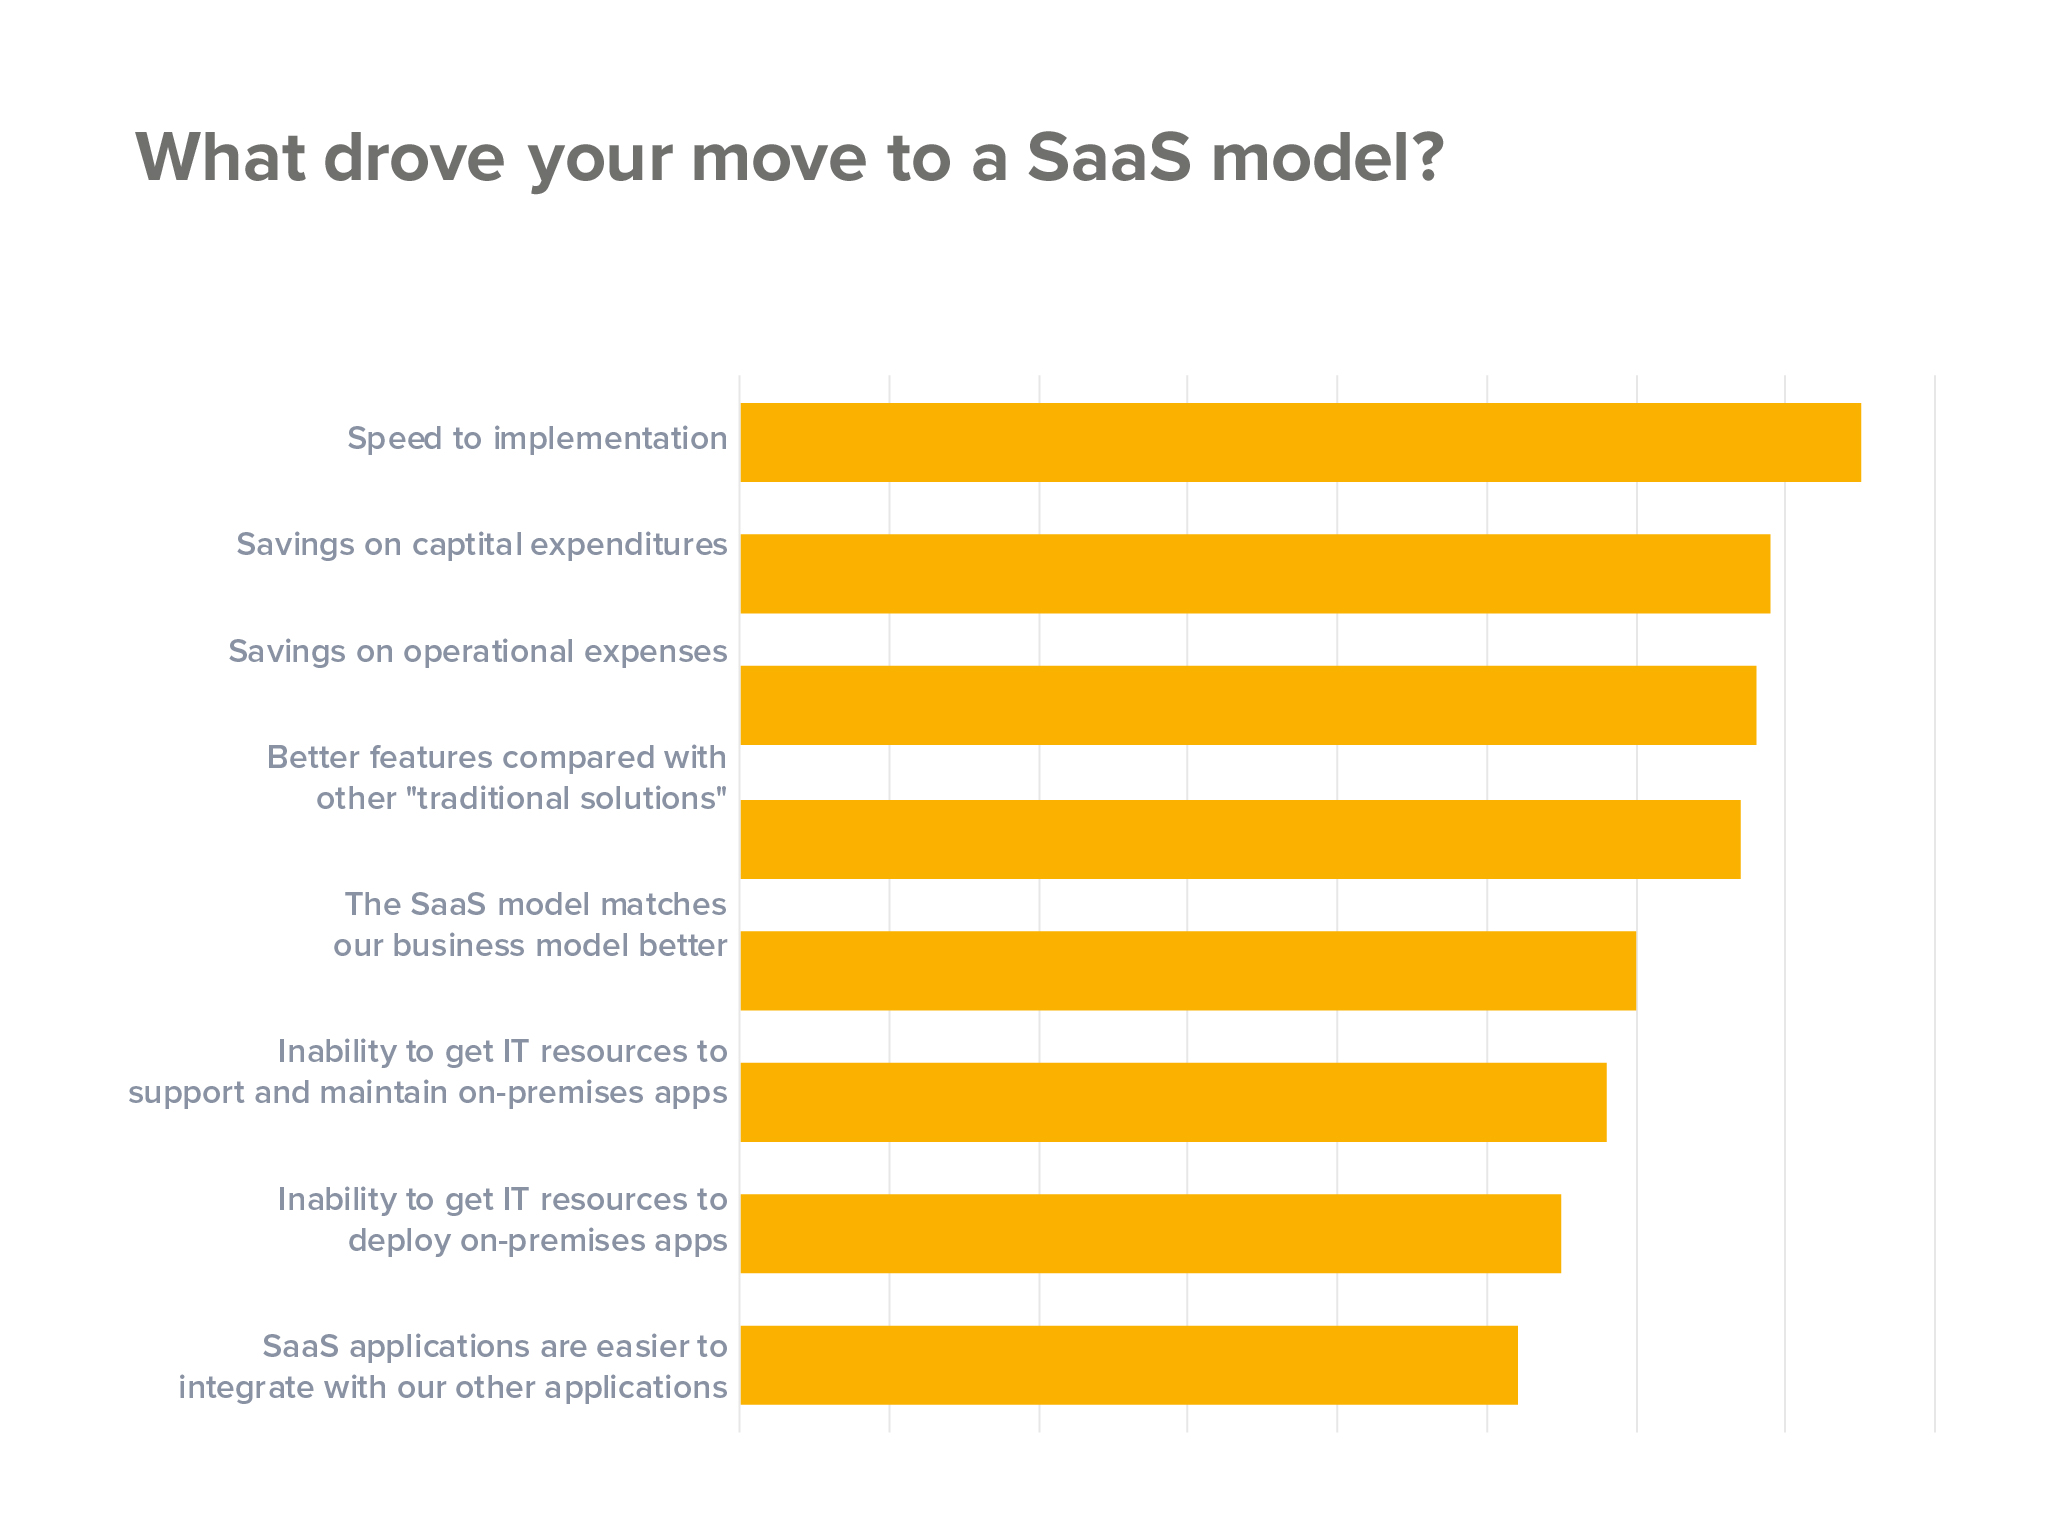 What drove your move to a SaaS model?